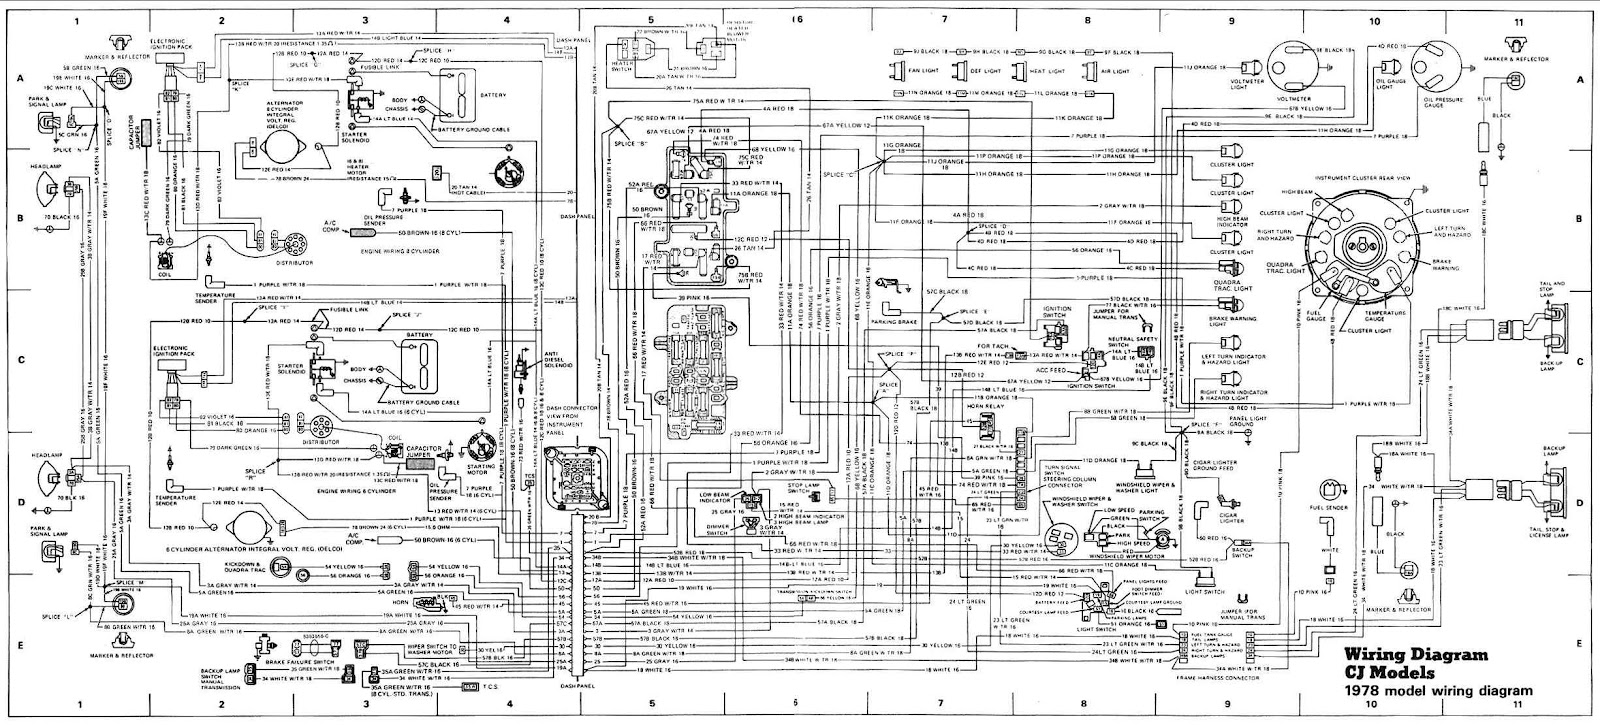 Jeep CJ Models 1978 Complete Electrical Wiring Diagram jeep stereo wiring diagram jeep free wiring diagrams 2003 jeep liberty radio wiring diagram at highcare.asia